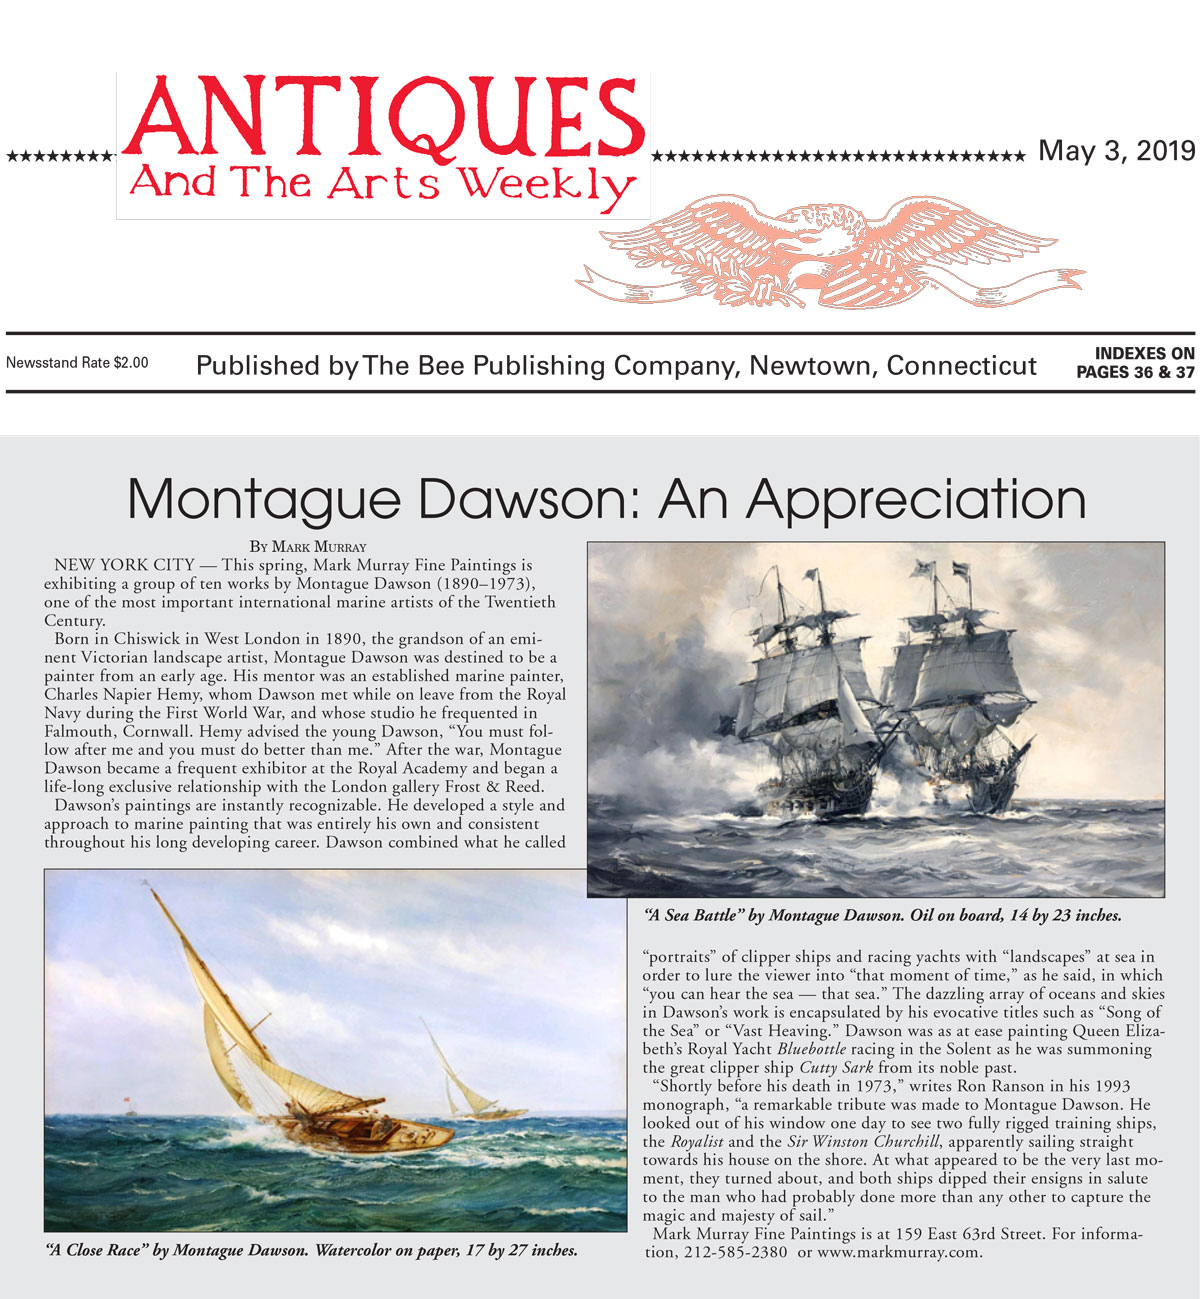 Antiques-Arts-Weekly-Montague-Dawson-article-2019.jpg